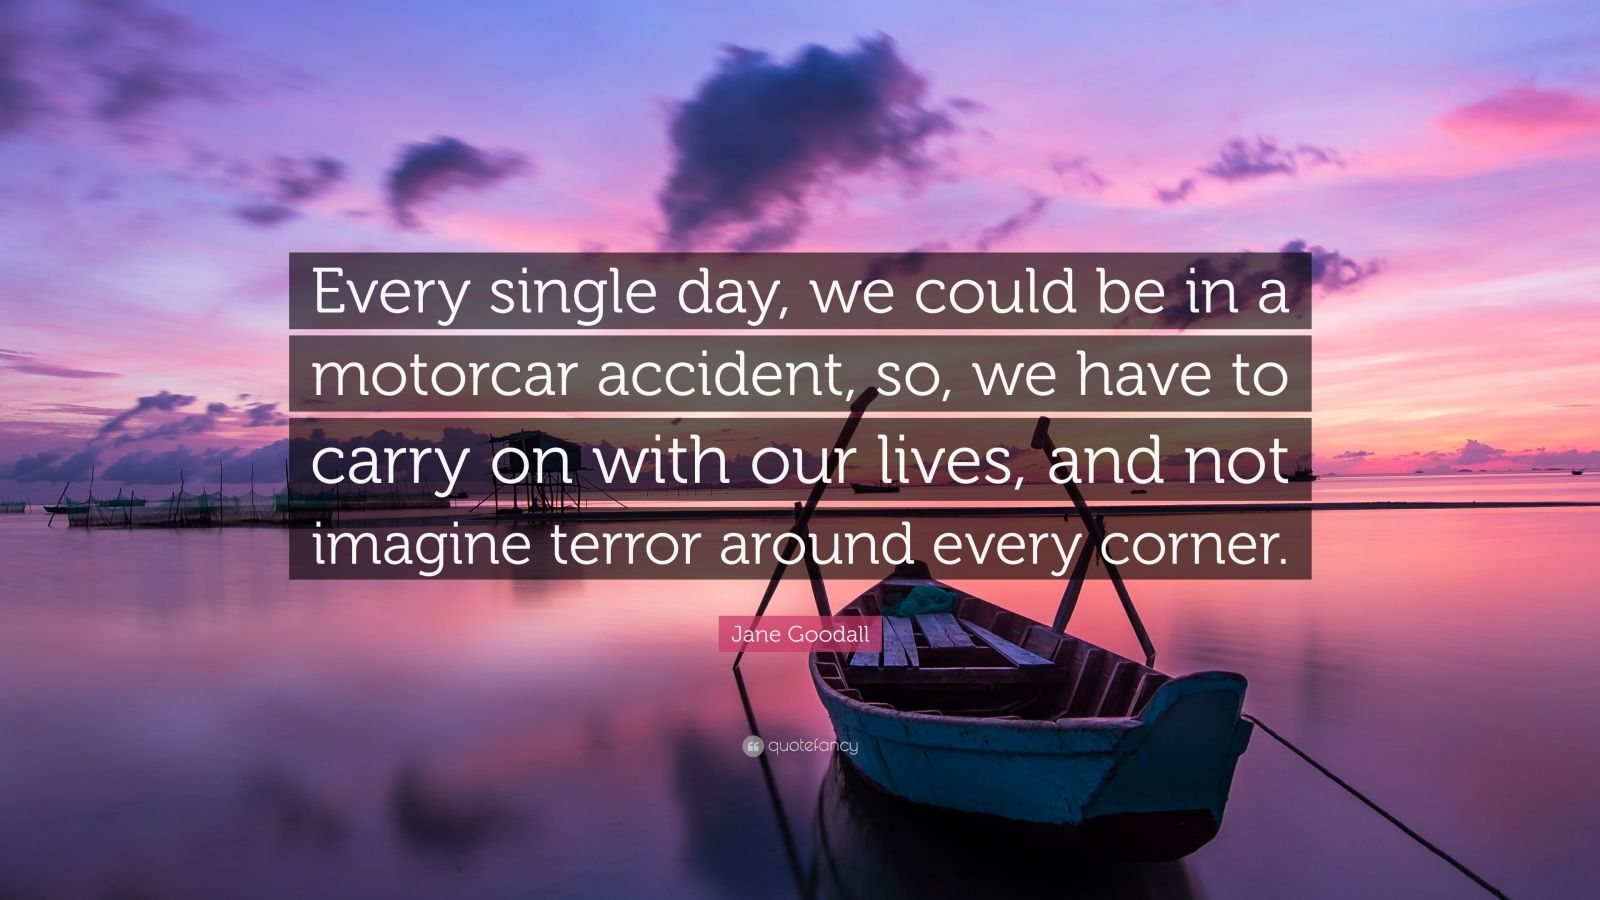 """Jane Goodall Quote: """"Every single day, we could be in a motorcar accident, so, we have to carry on with our lives, and not imagine terror around every corner."""""""